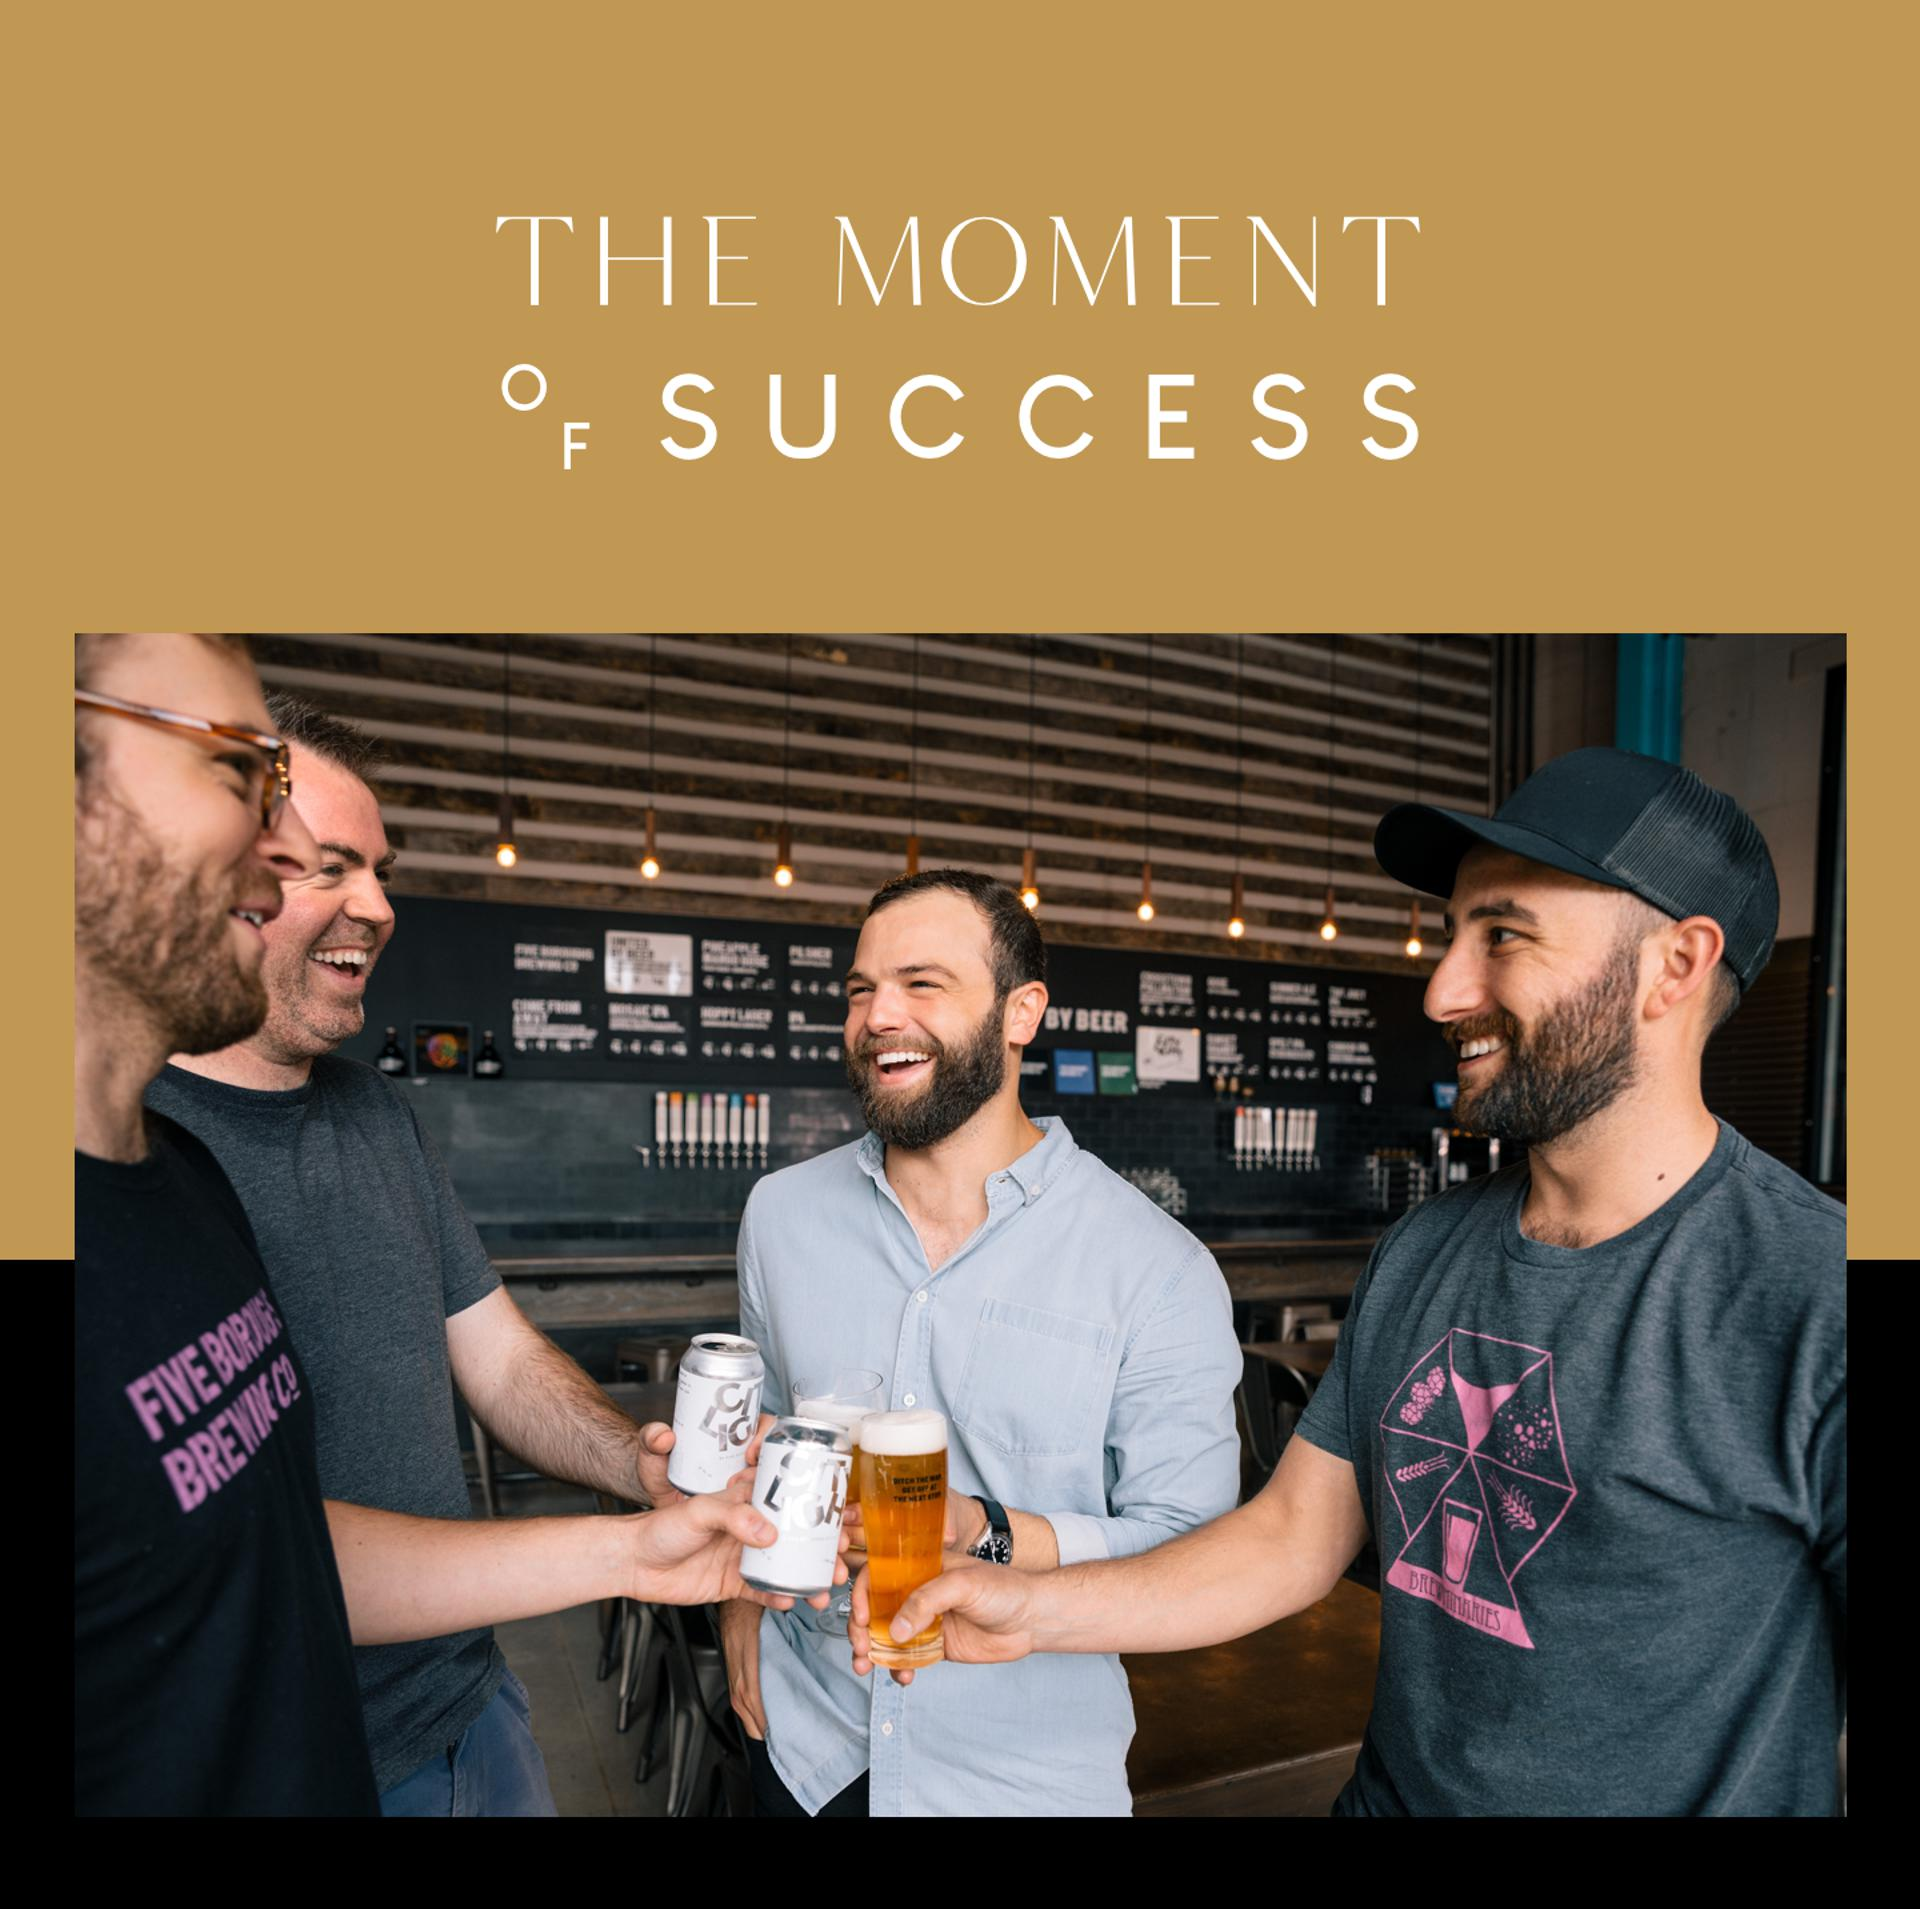 The Moment of Success